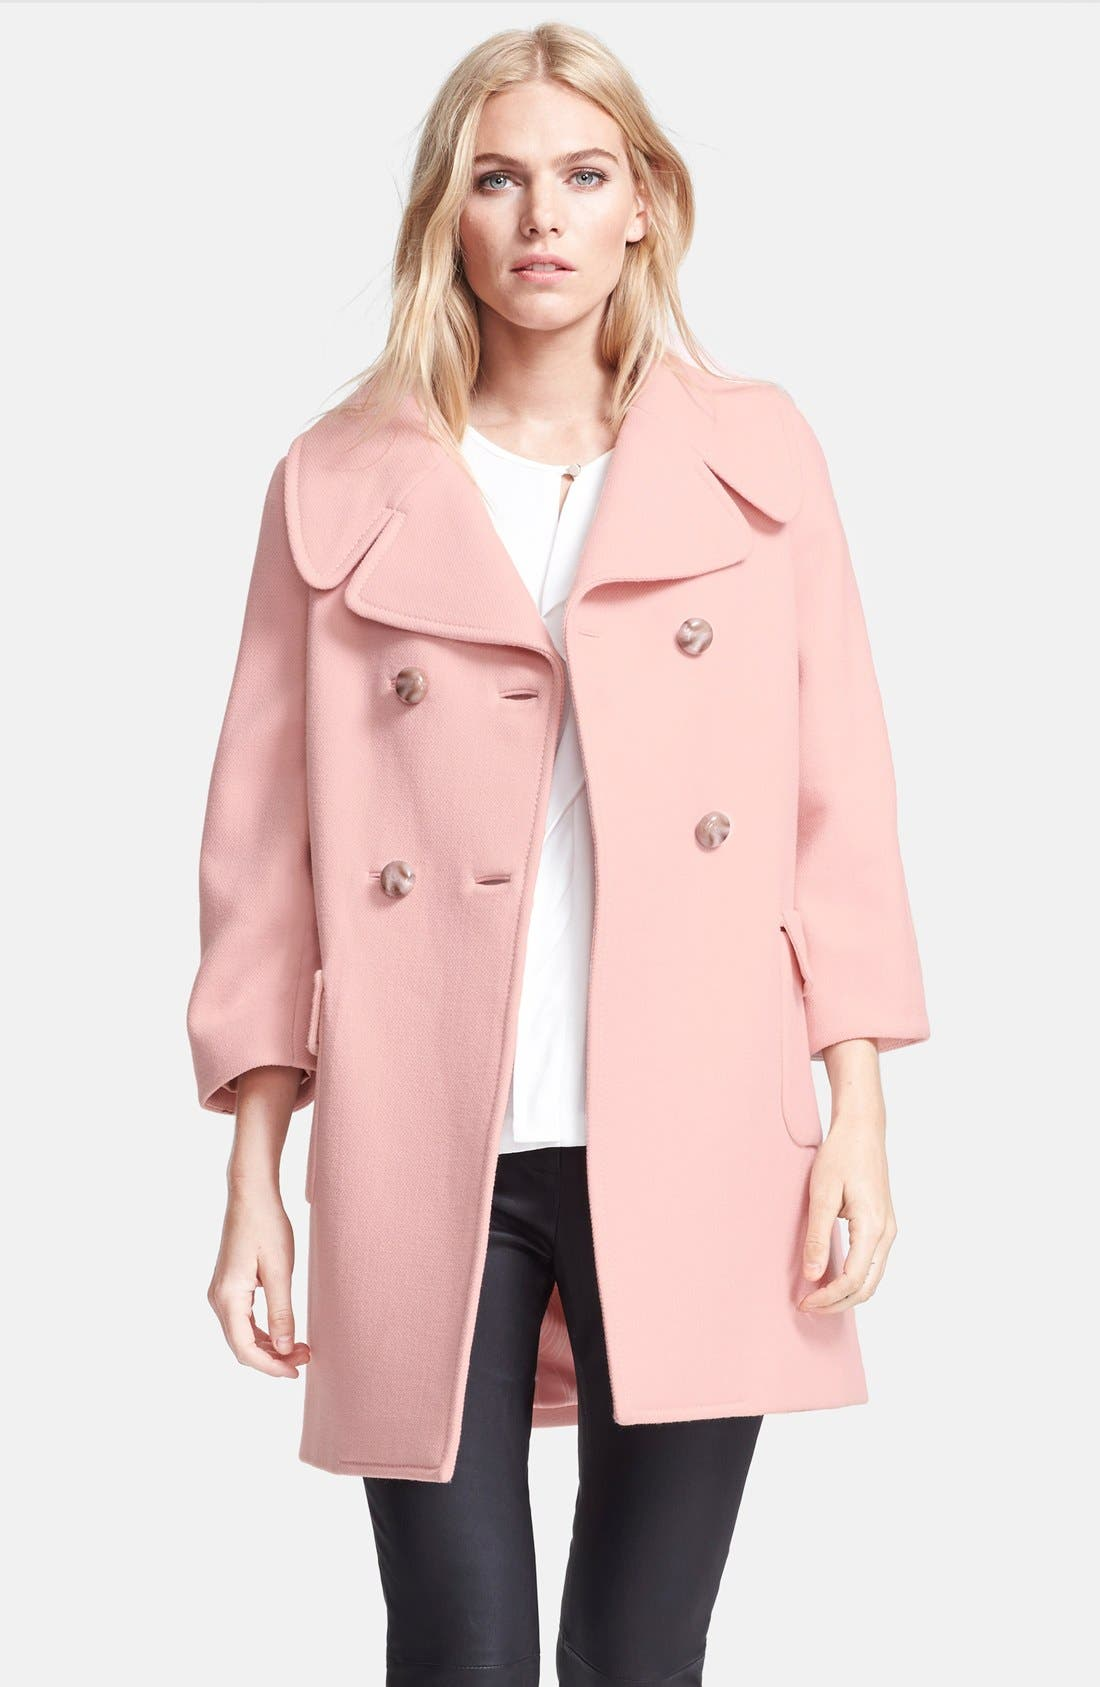 Alternate Image 1 Selected - kate spade new york 'jacques' double breasted wool coat